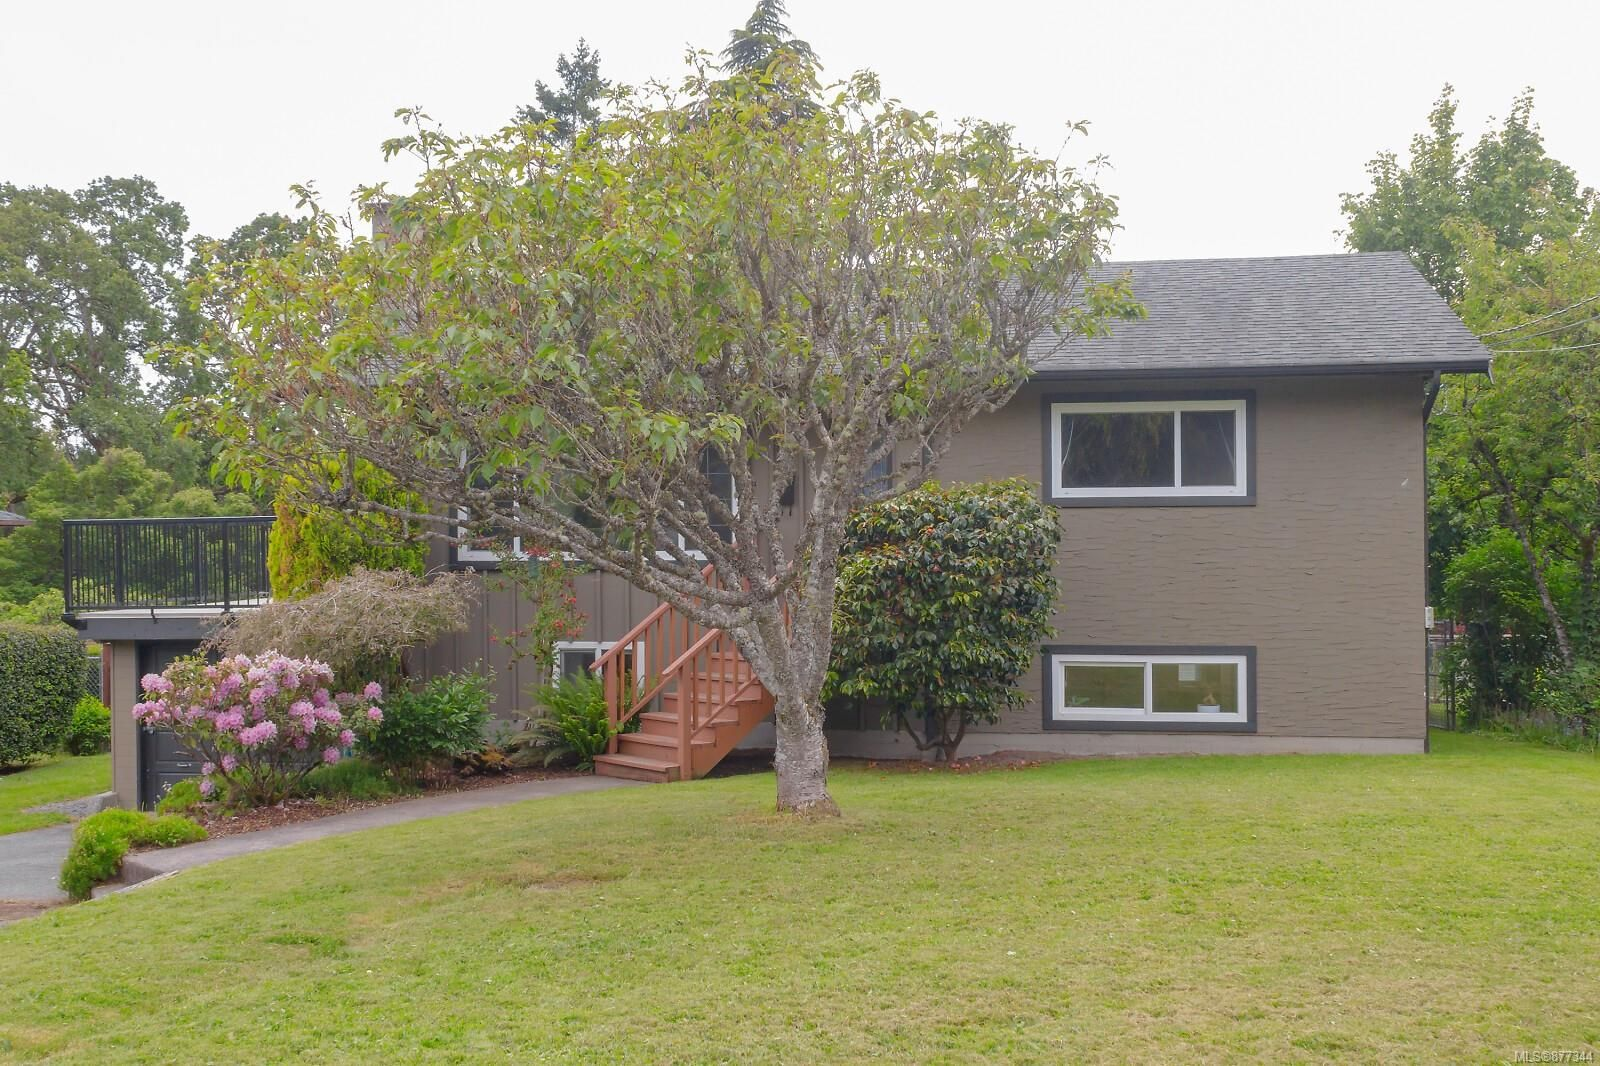 Main Photo: 875 Daffodil Ave in : SW Marigold House for sale (Saanich West)  : MLS®# 877344